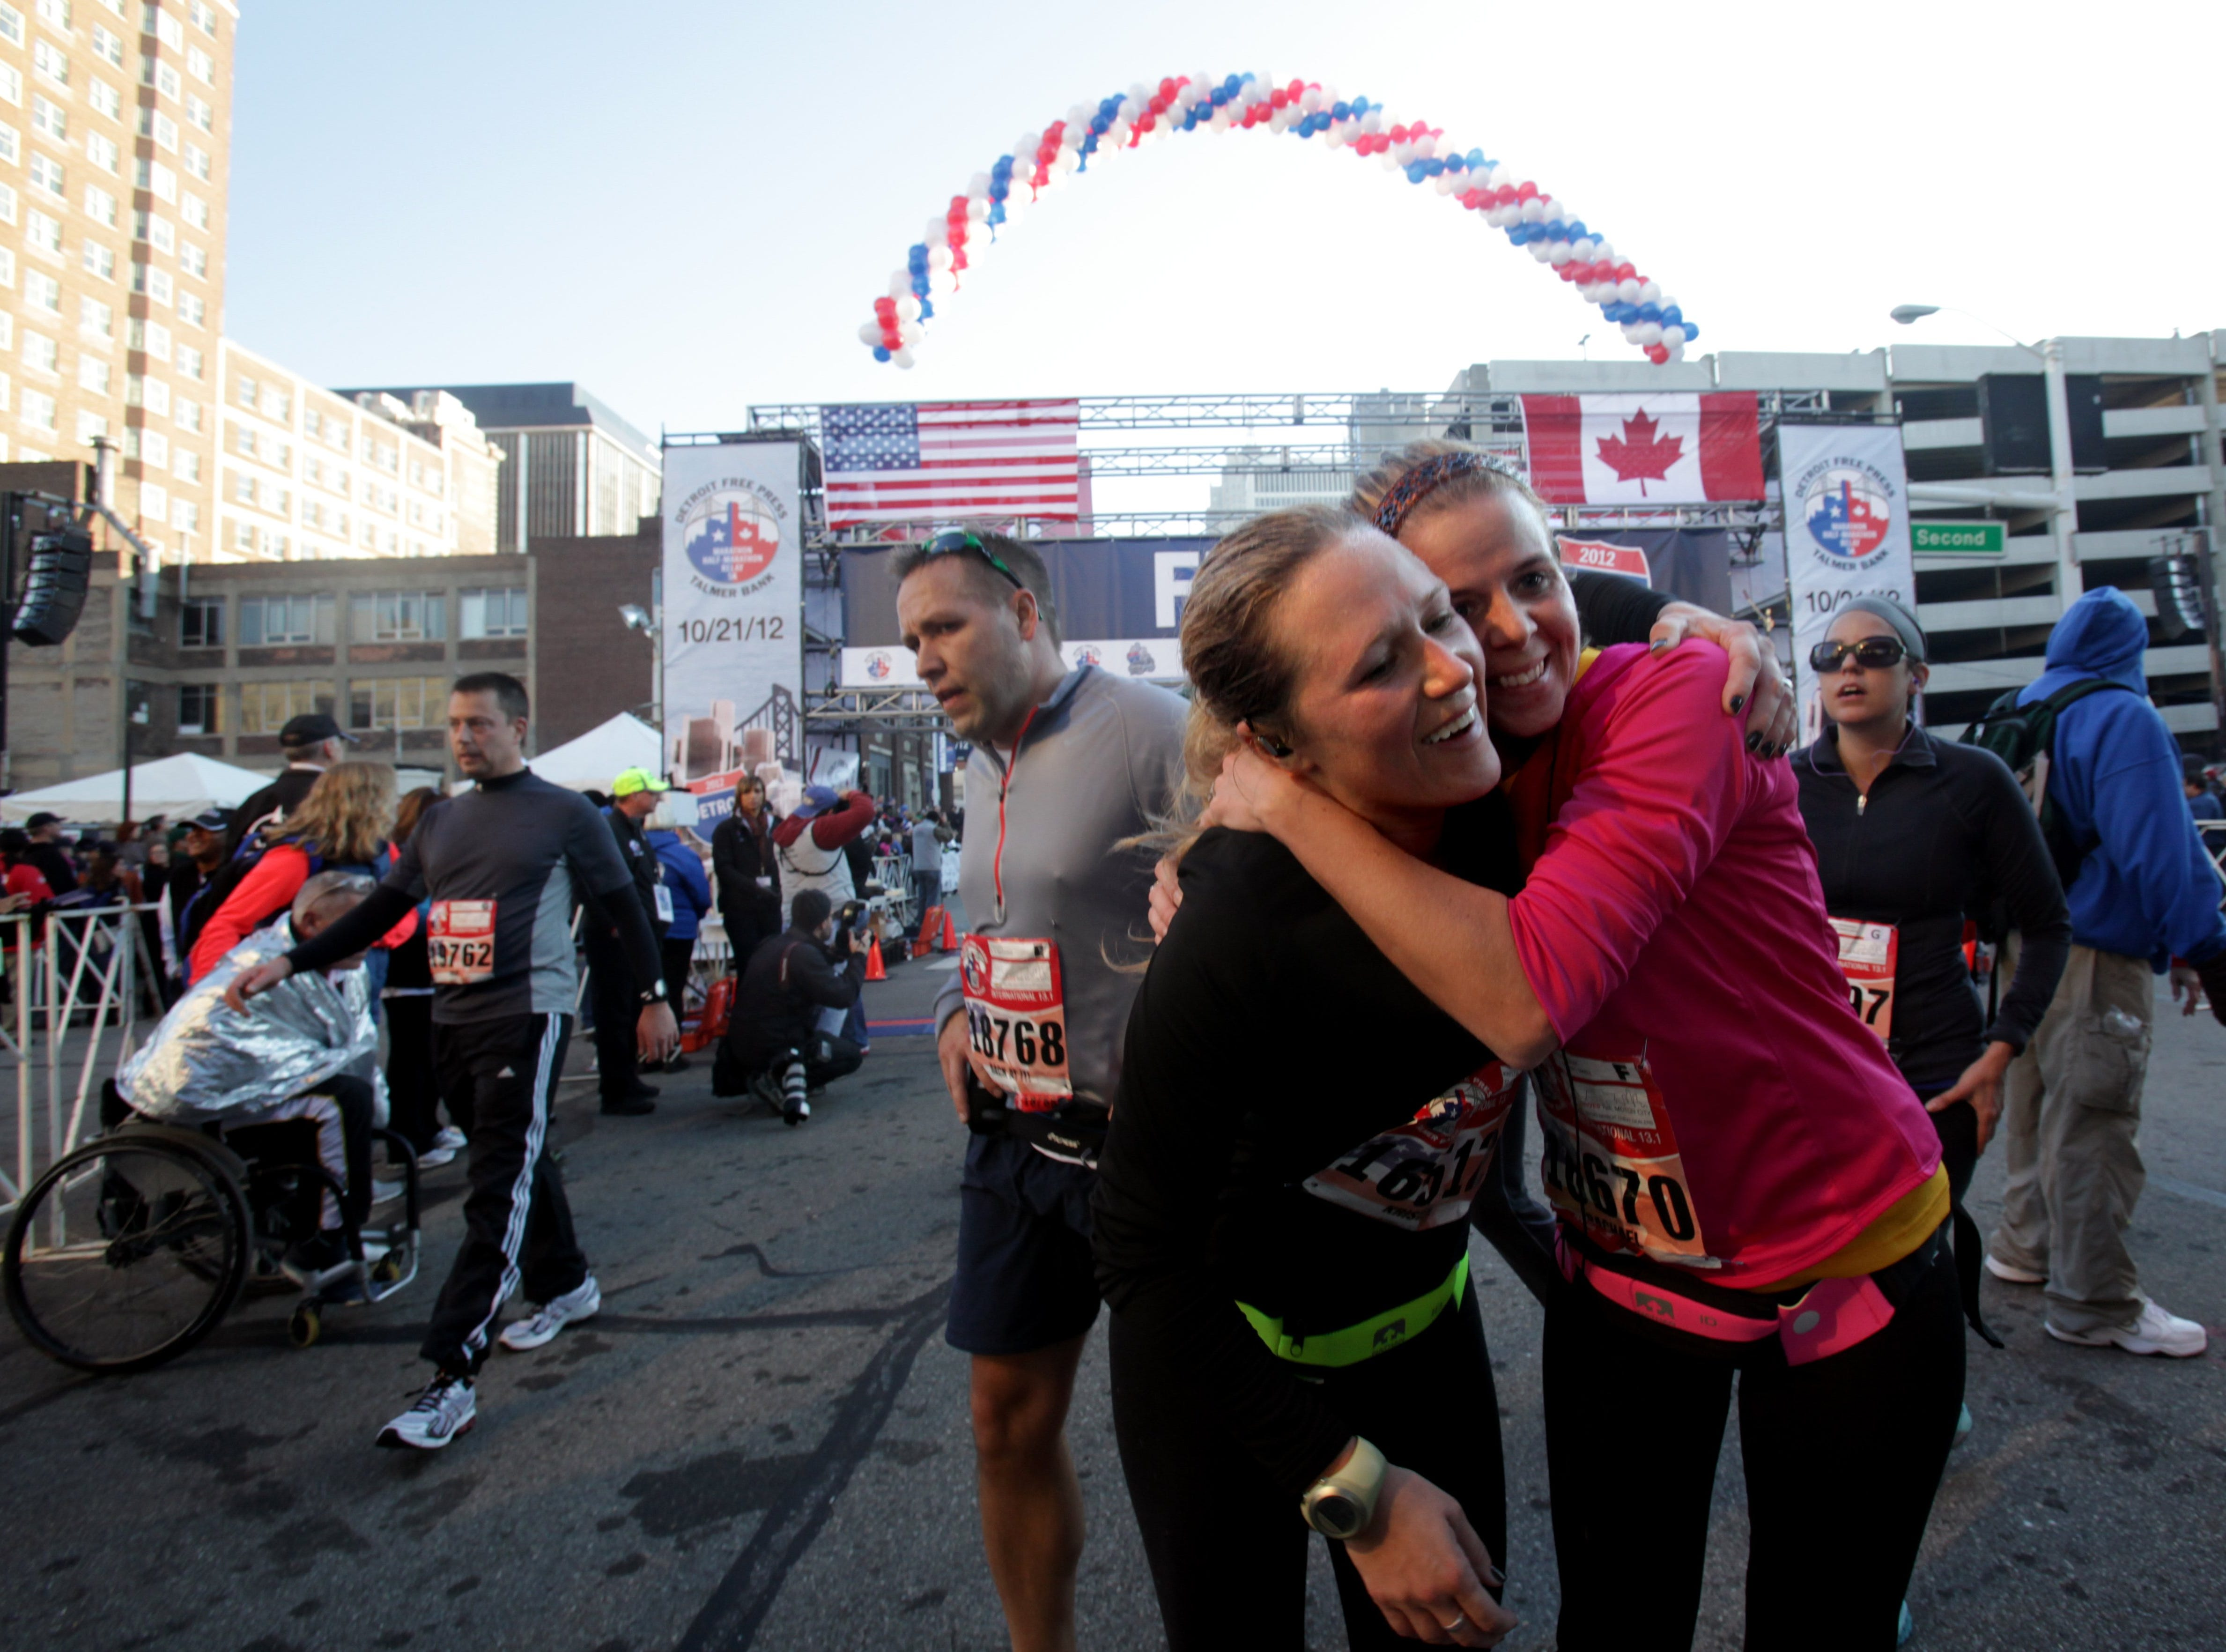 From left, Kristin Thomas, 32, of Lambertville and Rachel Debarr, 31, of Toledo, Ohio, embrace at the finish line at the Detroit Free Press/Talmer Bank Marathon in Detroit,  Mich., Sunday, Oct. 21, 2012.